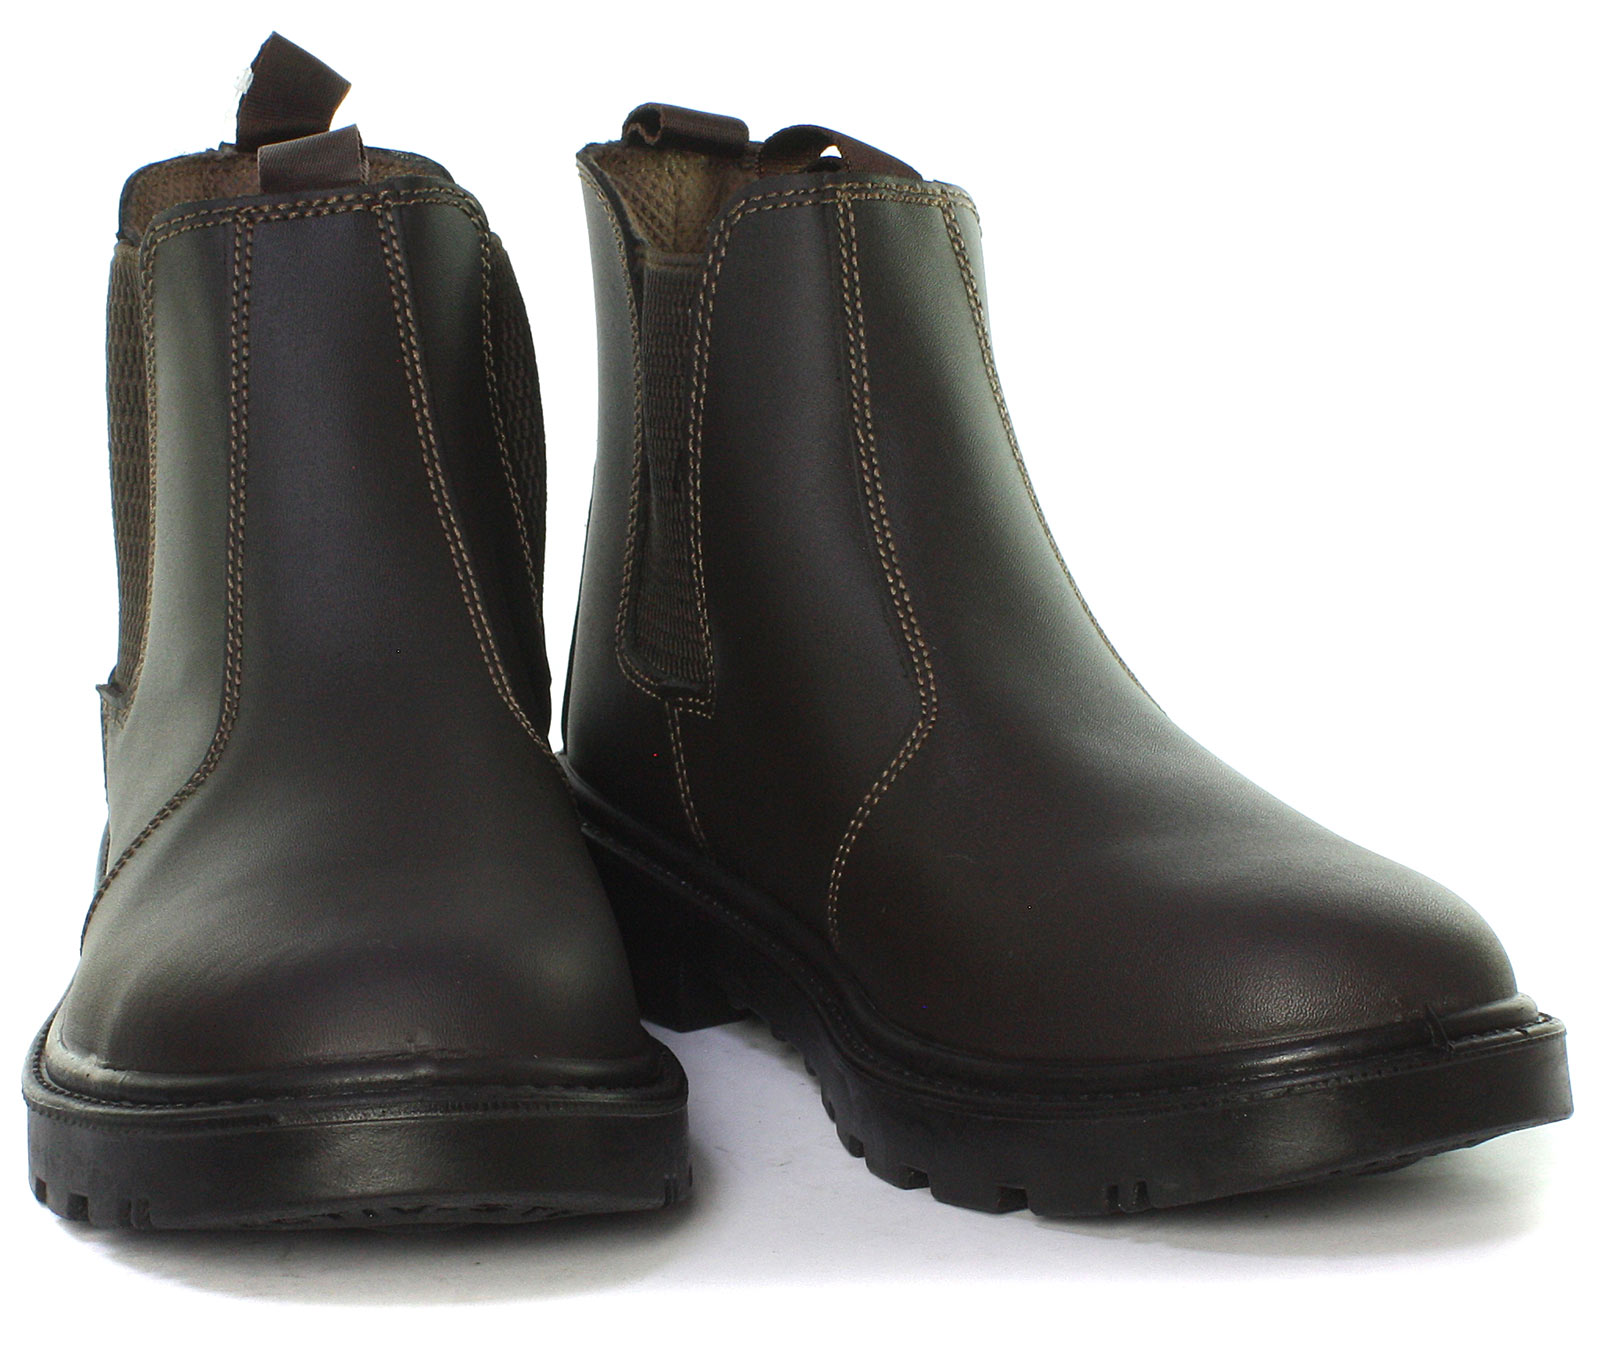 Grafters-Grinder-Twin-Gusset-Dealer-Mens-Safety-Boots-ALL-SIZES-AND-COLOURS miniature 12